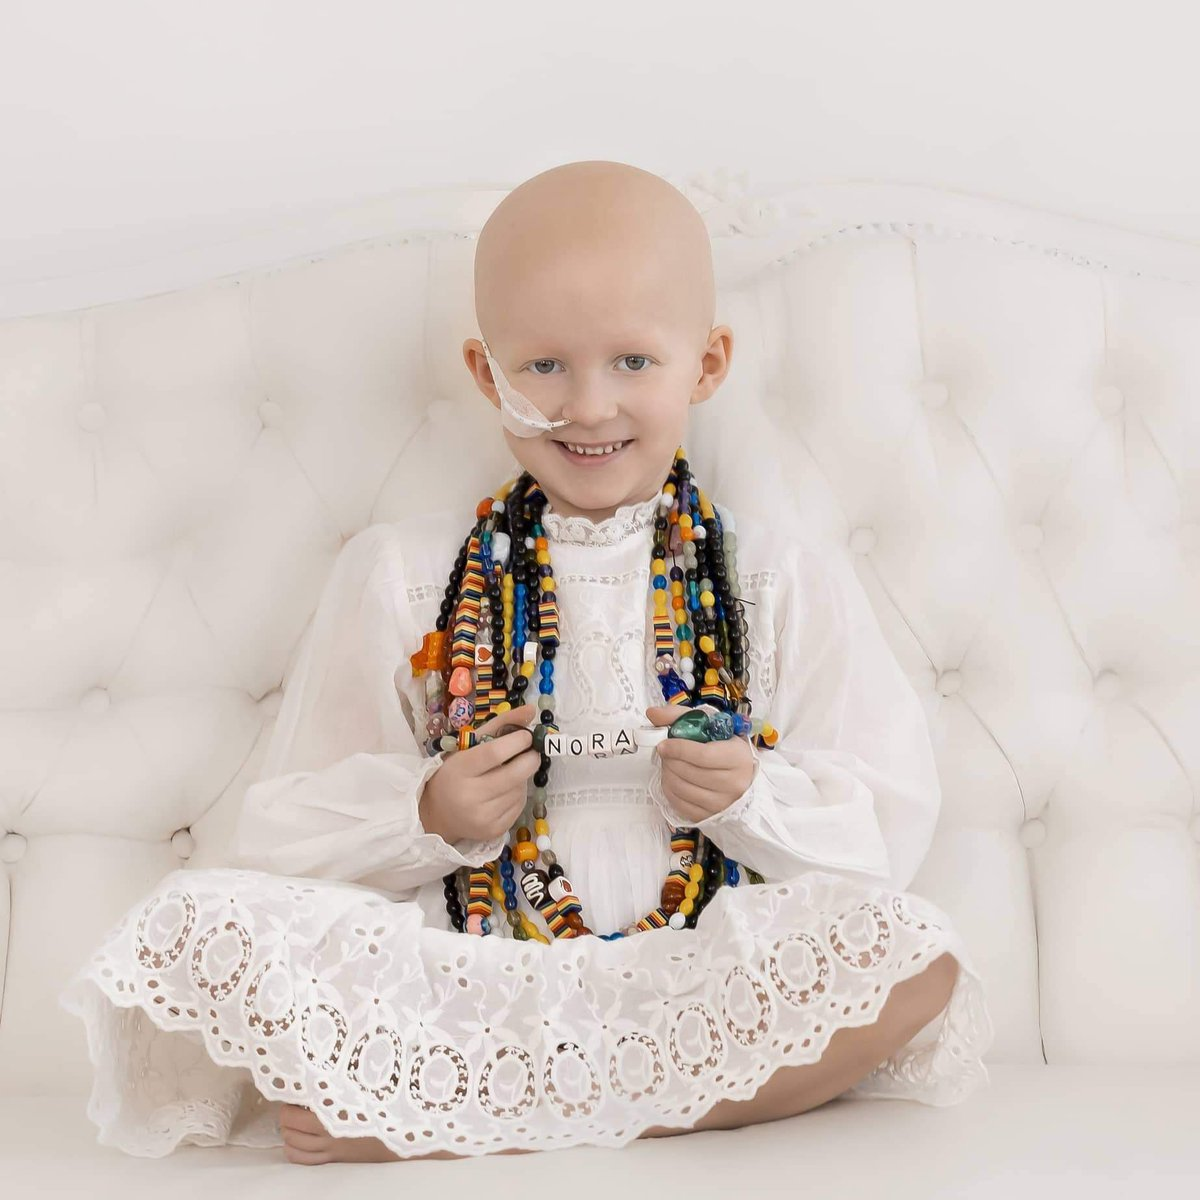 Please help us save Nora!We need to get to Texas for a clinical trial - her last chance for a cure! If you can donate or share her givealittle page that would be amazing #ChildhoodCancer #hepatoblastoma #joinnorasarmy givealittle.co.nz/cause/join-nor…